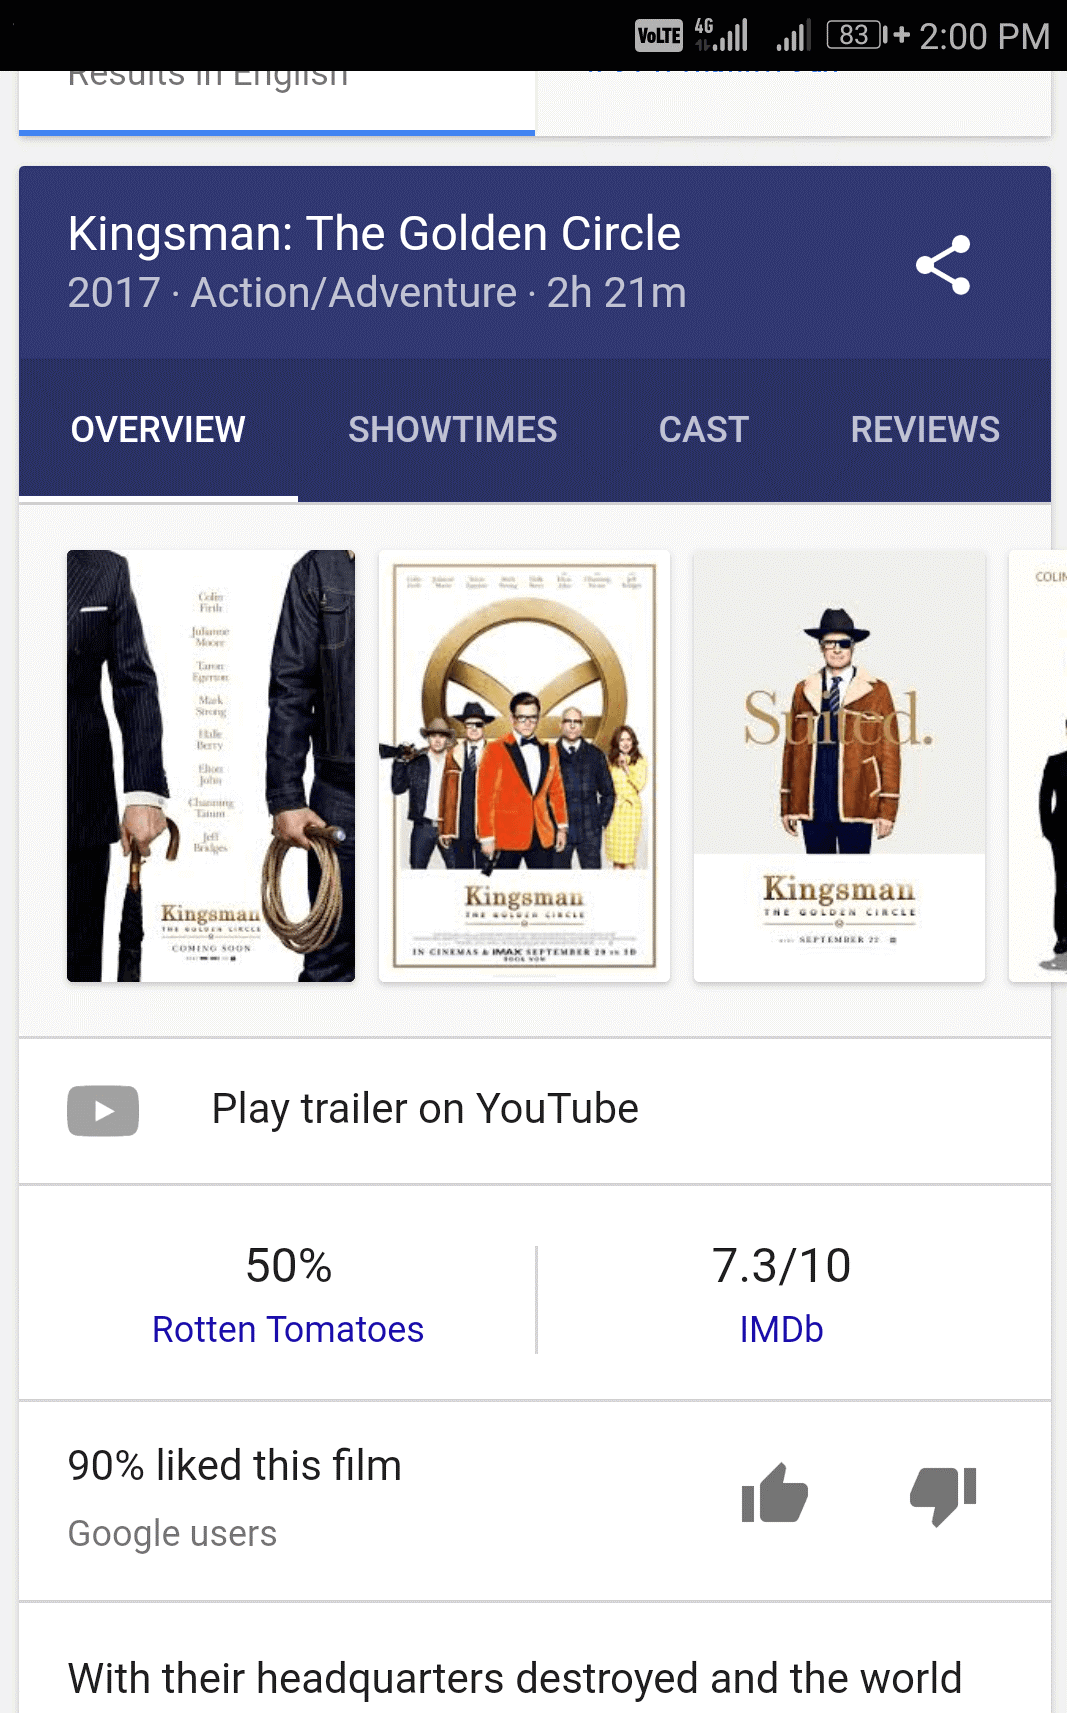 How to review or rate a movie